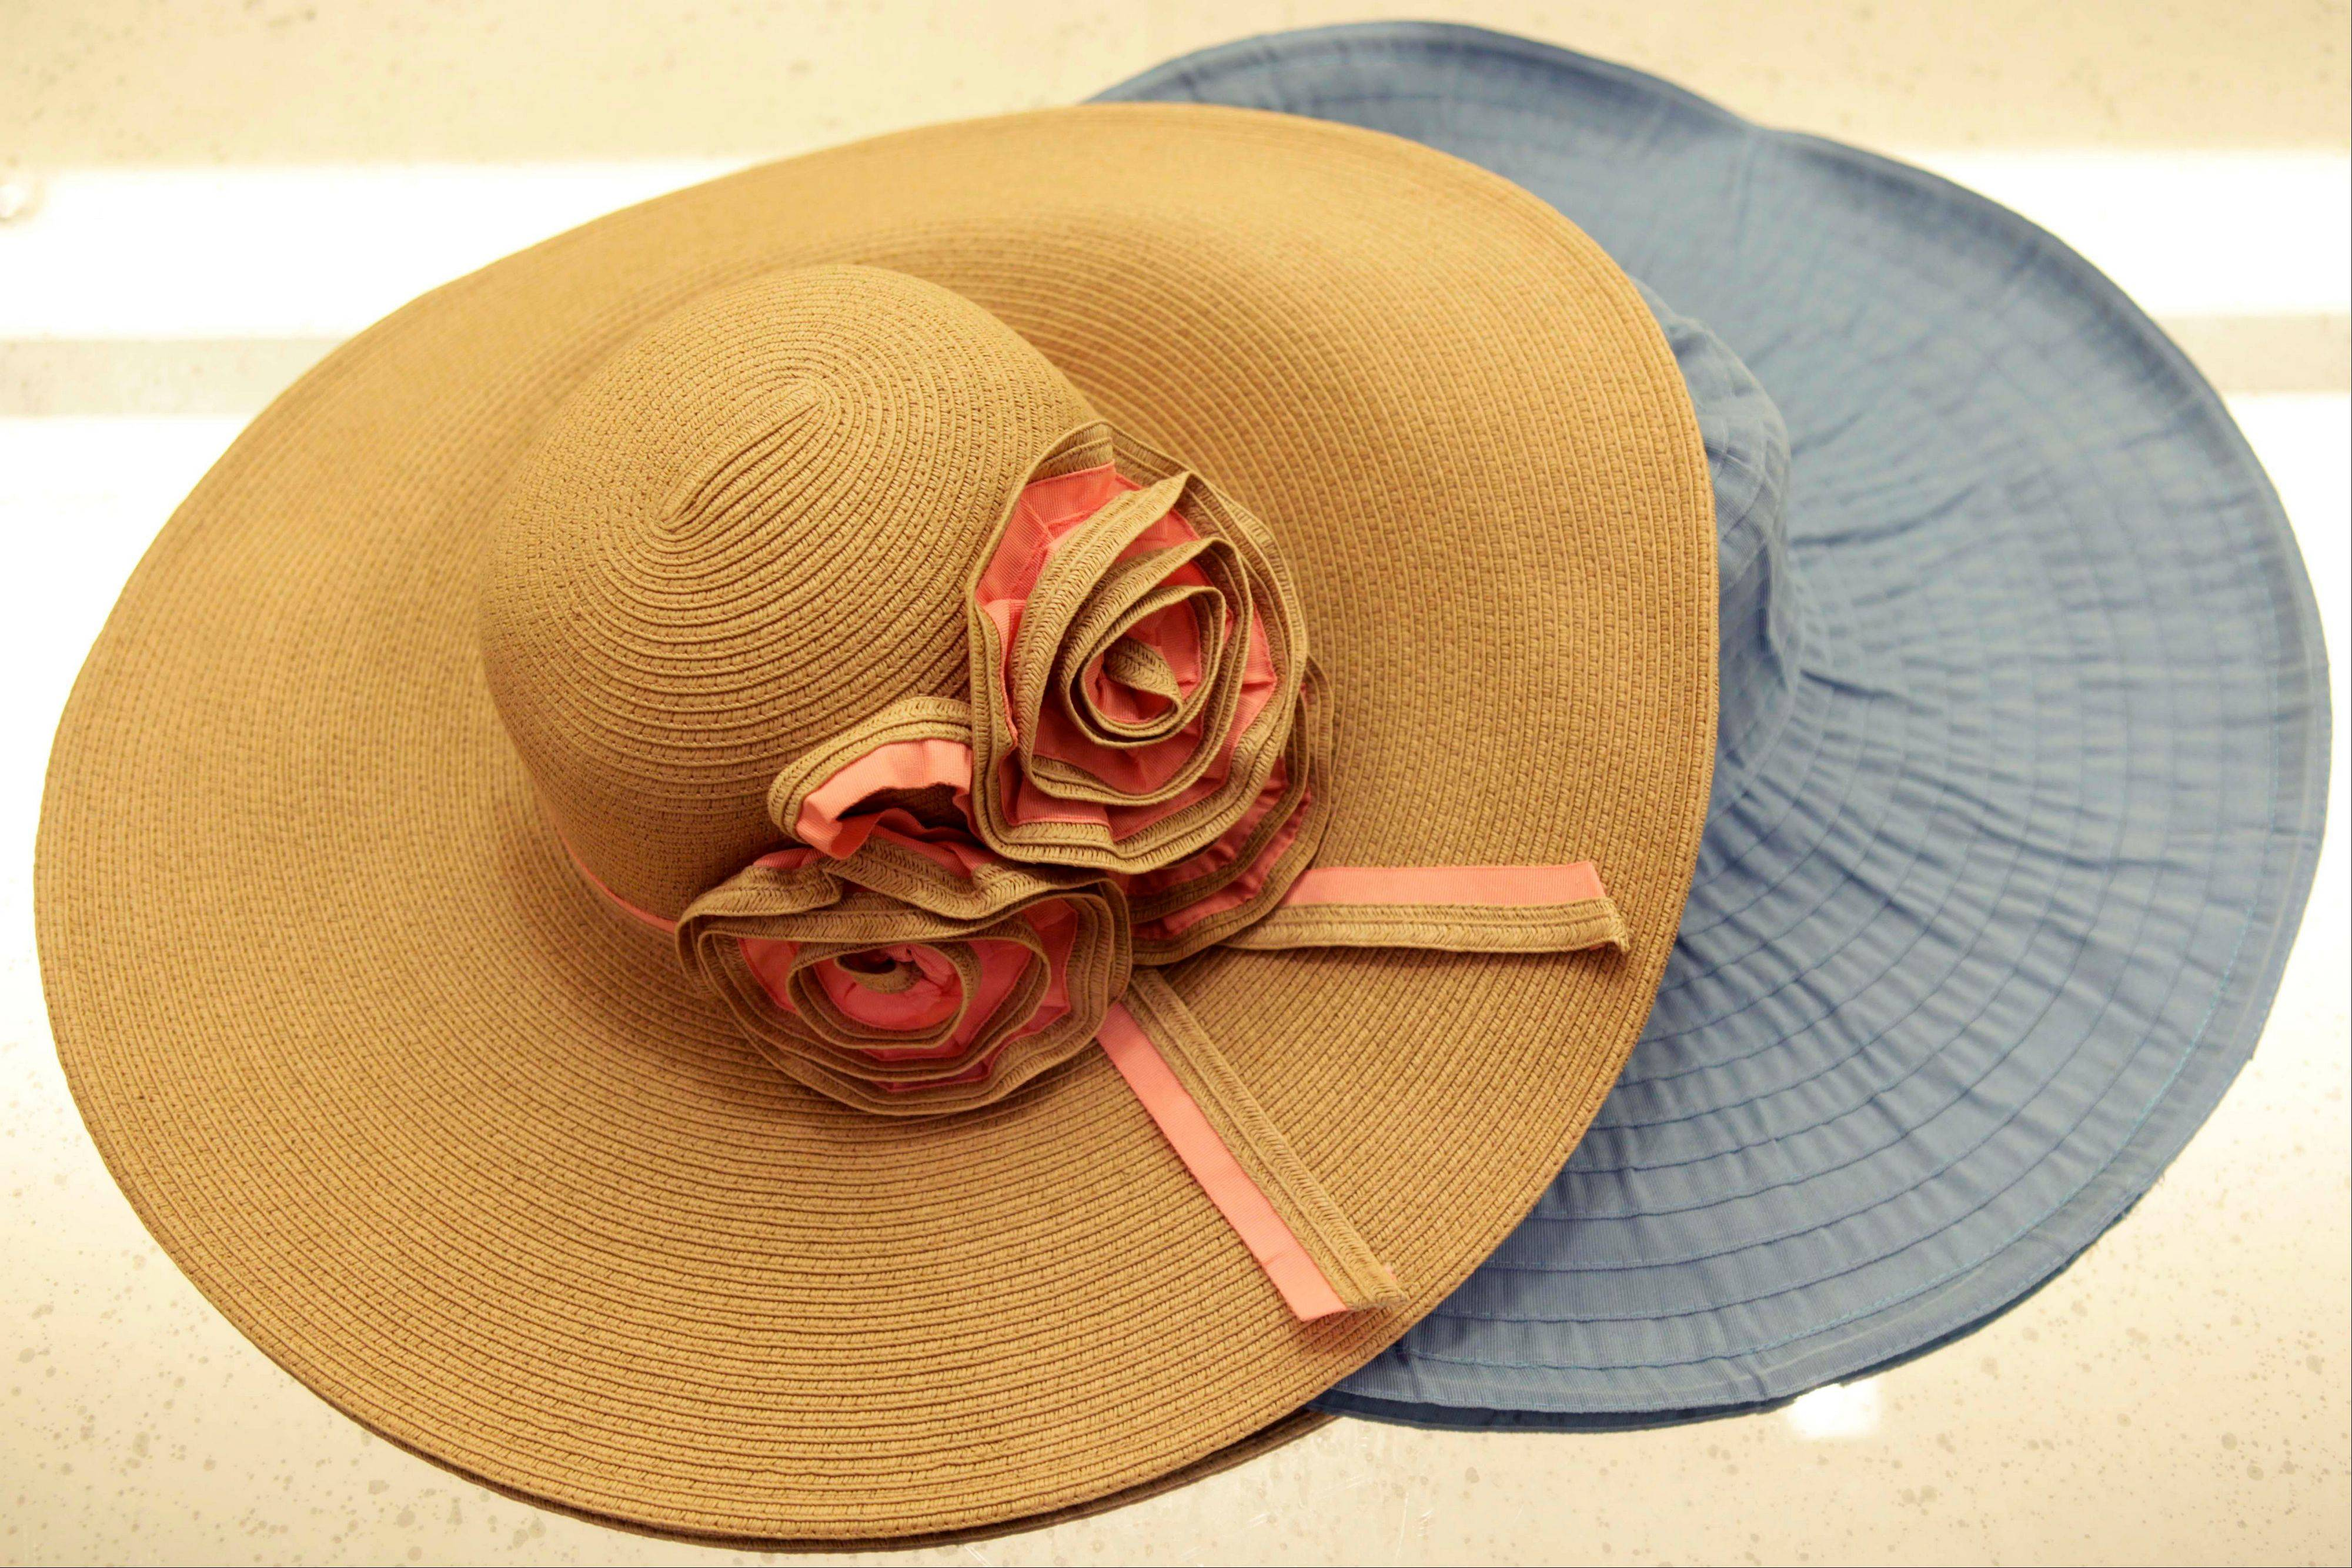 Hats by Badgley Mischka at their studio in New York would work well at upscale summer parties.